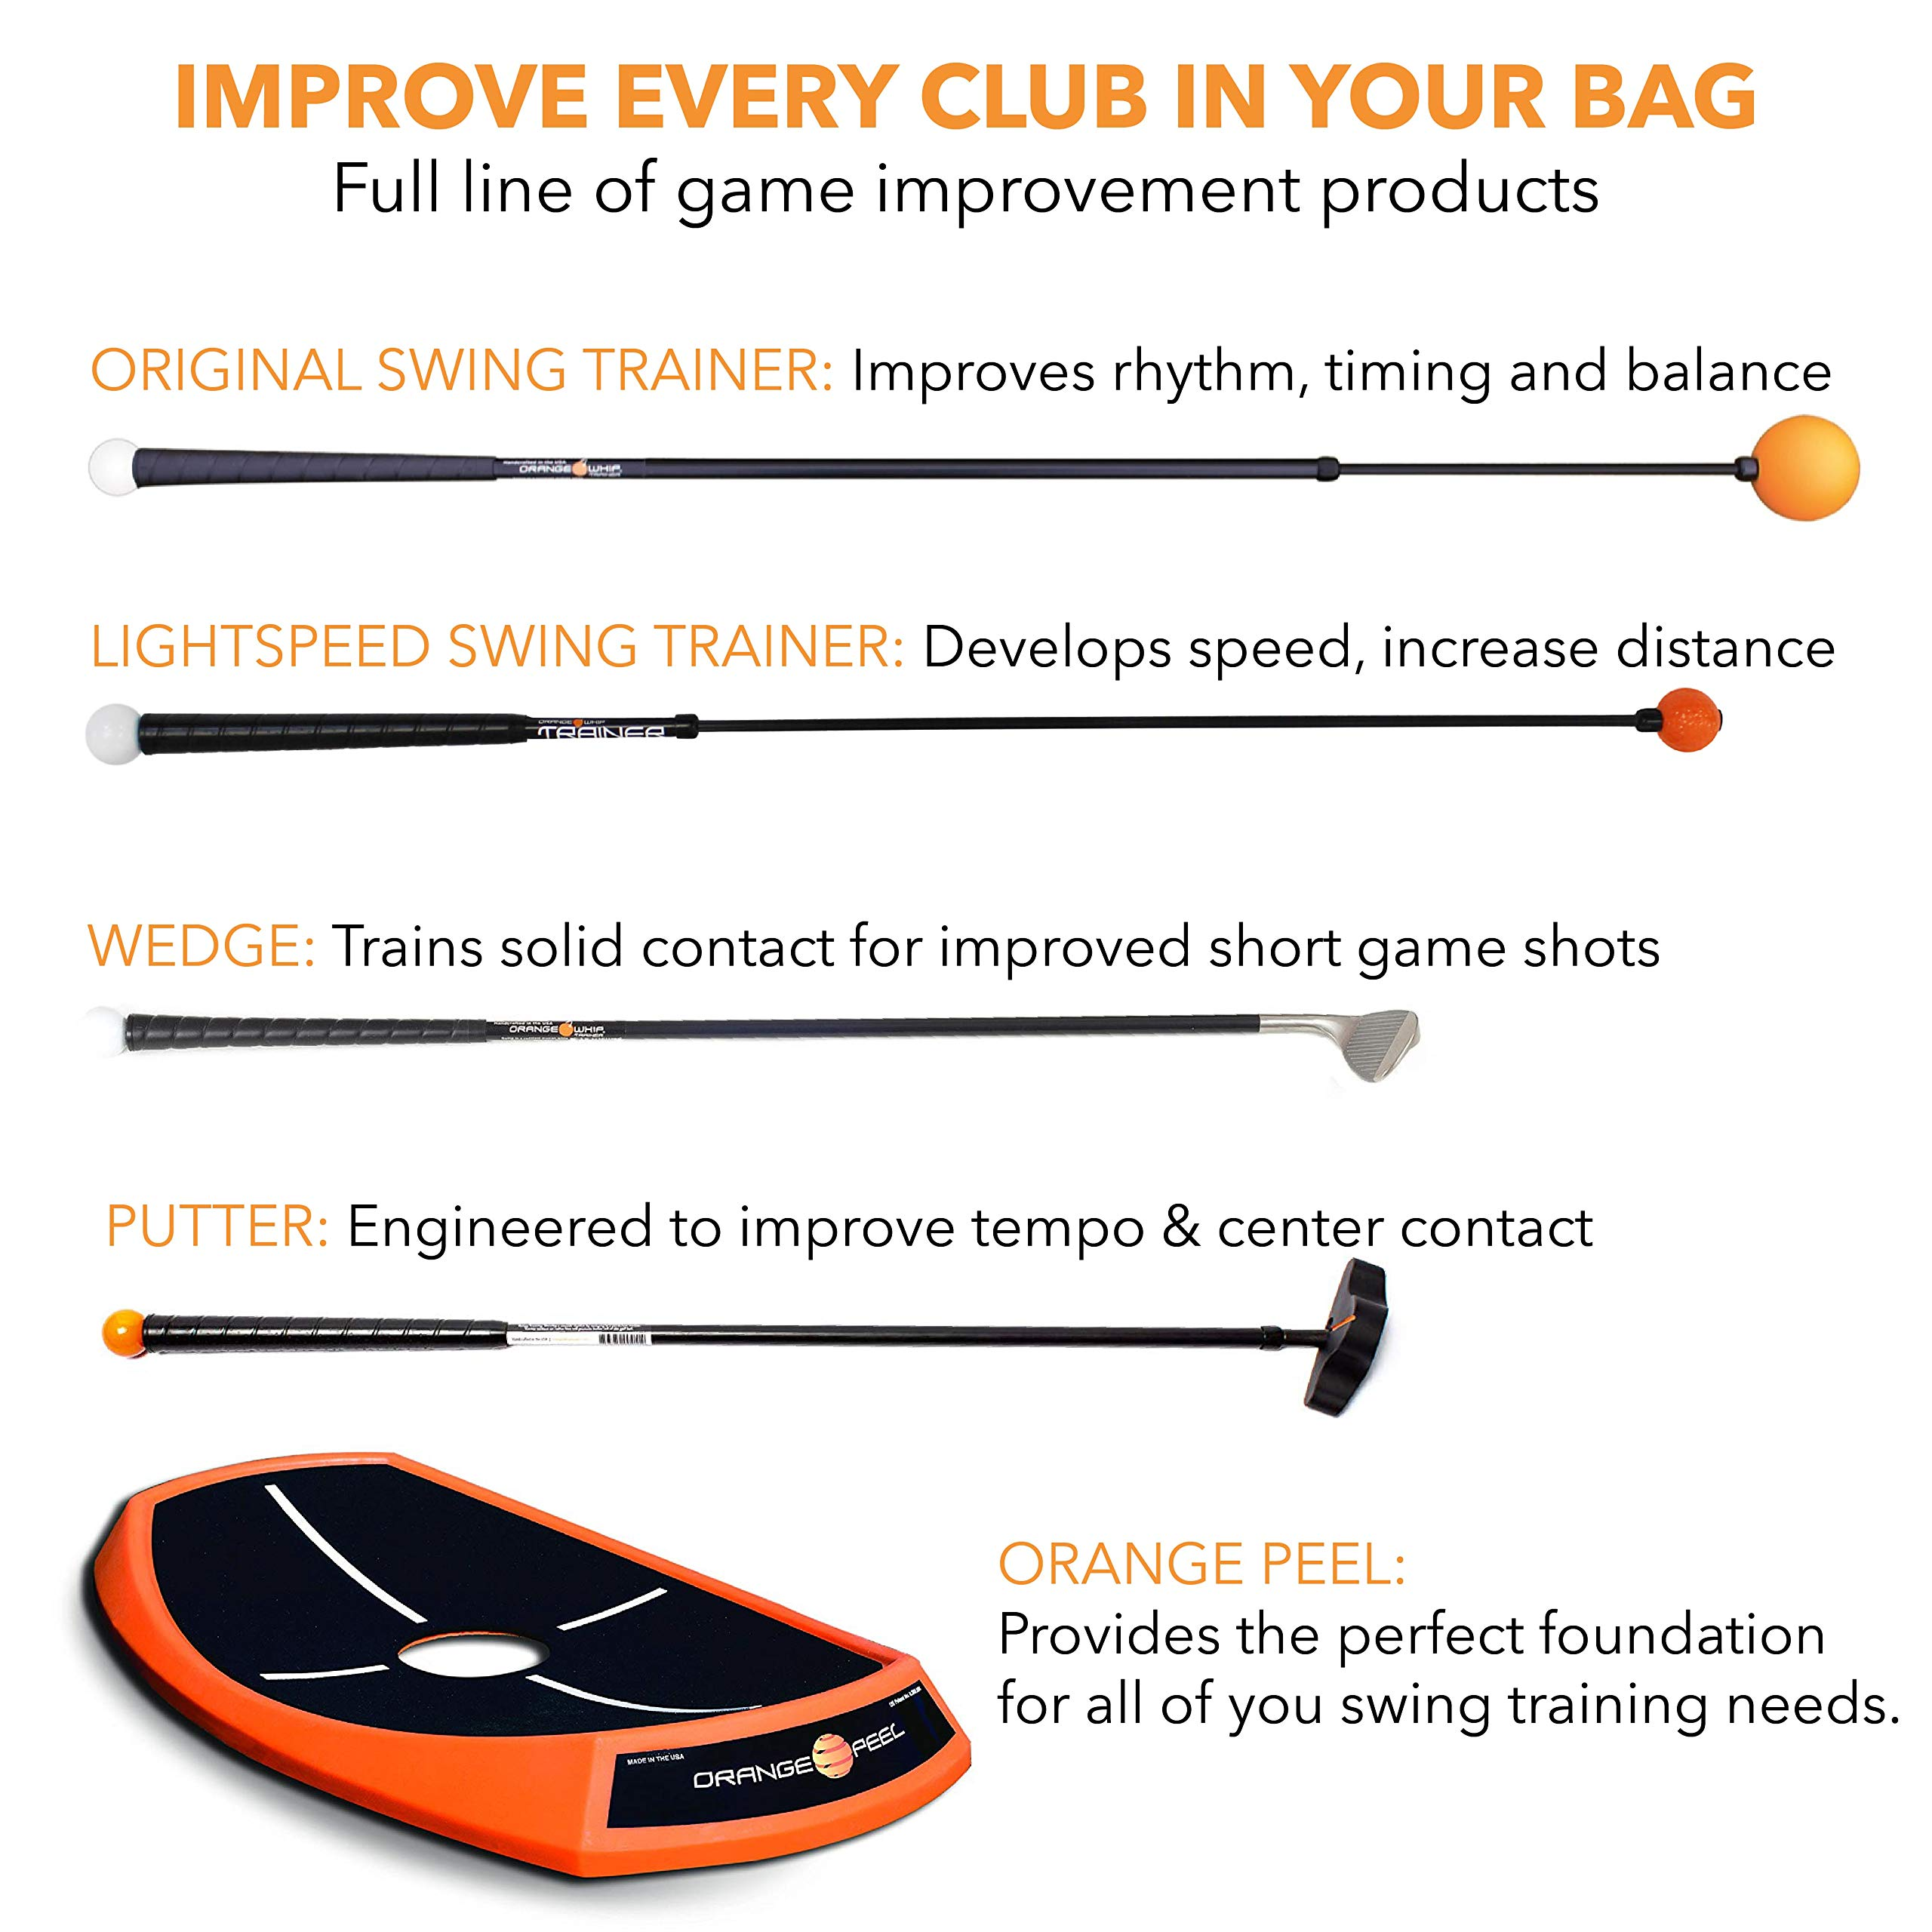 Orange Whip Midsize Golf Swing Trainer Aid for Improved Rhythm, Flexibility, Balance, Tempo, and Strength - 43.5'' by Orange Whip